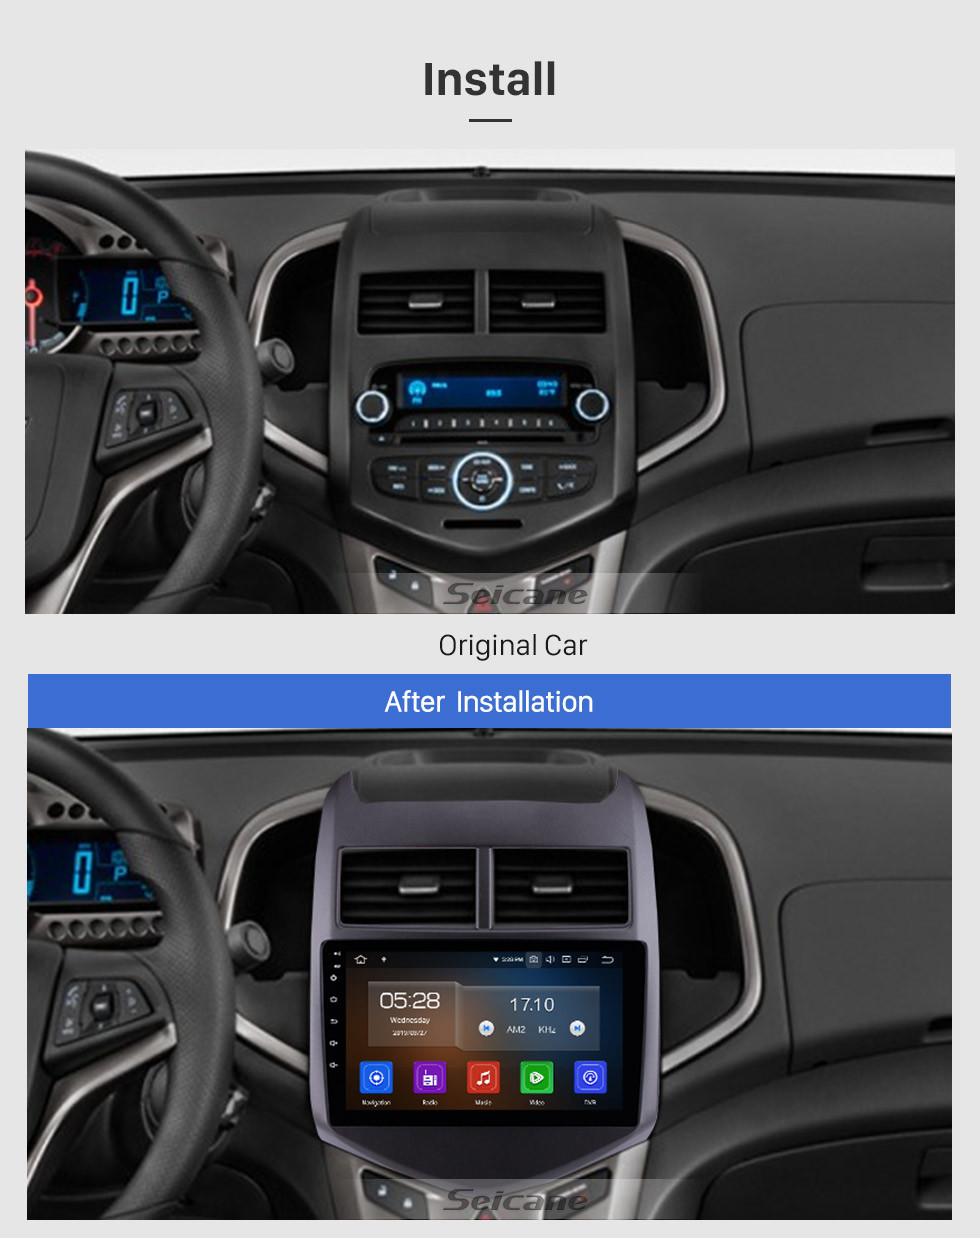 Seicane 2010 2011 2012 2013 Chevy Chevrolet AVEO Car Radio Android 10.0 Radio GPS Navigation Bluetooth HD TouchScreen WiFi Mirror Link Rearview support DVR 1080P Video OBD DVD Player